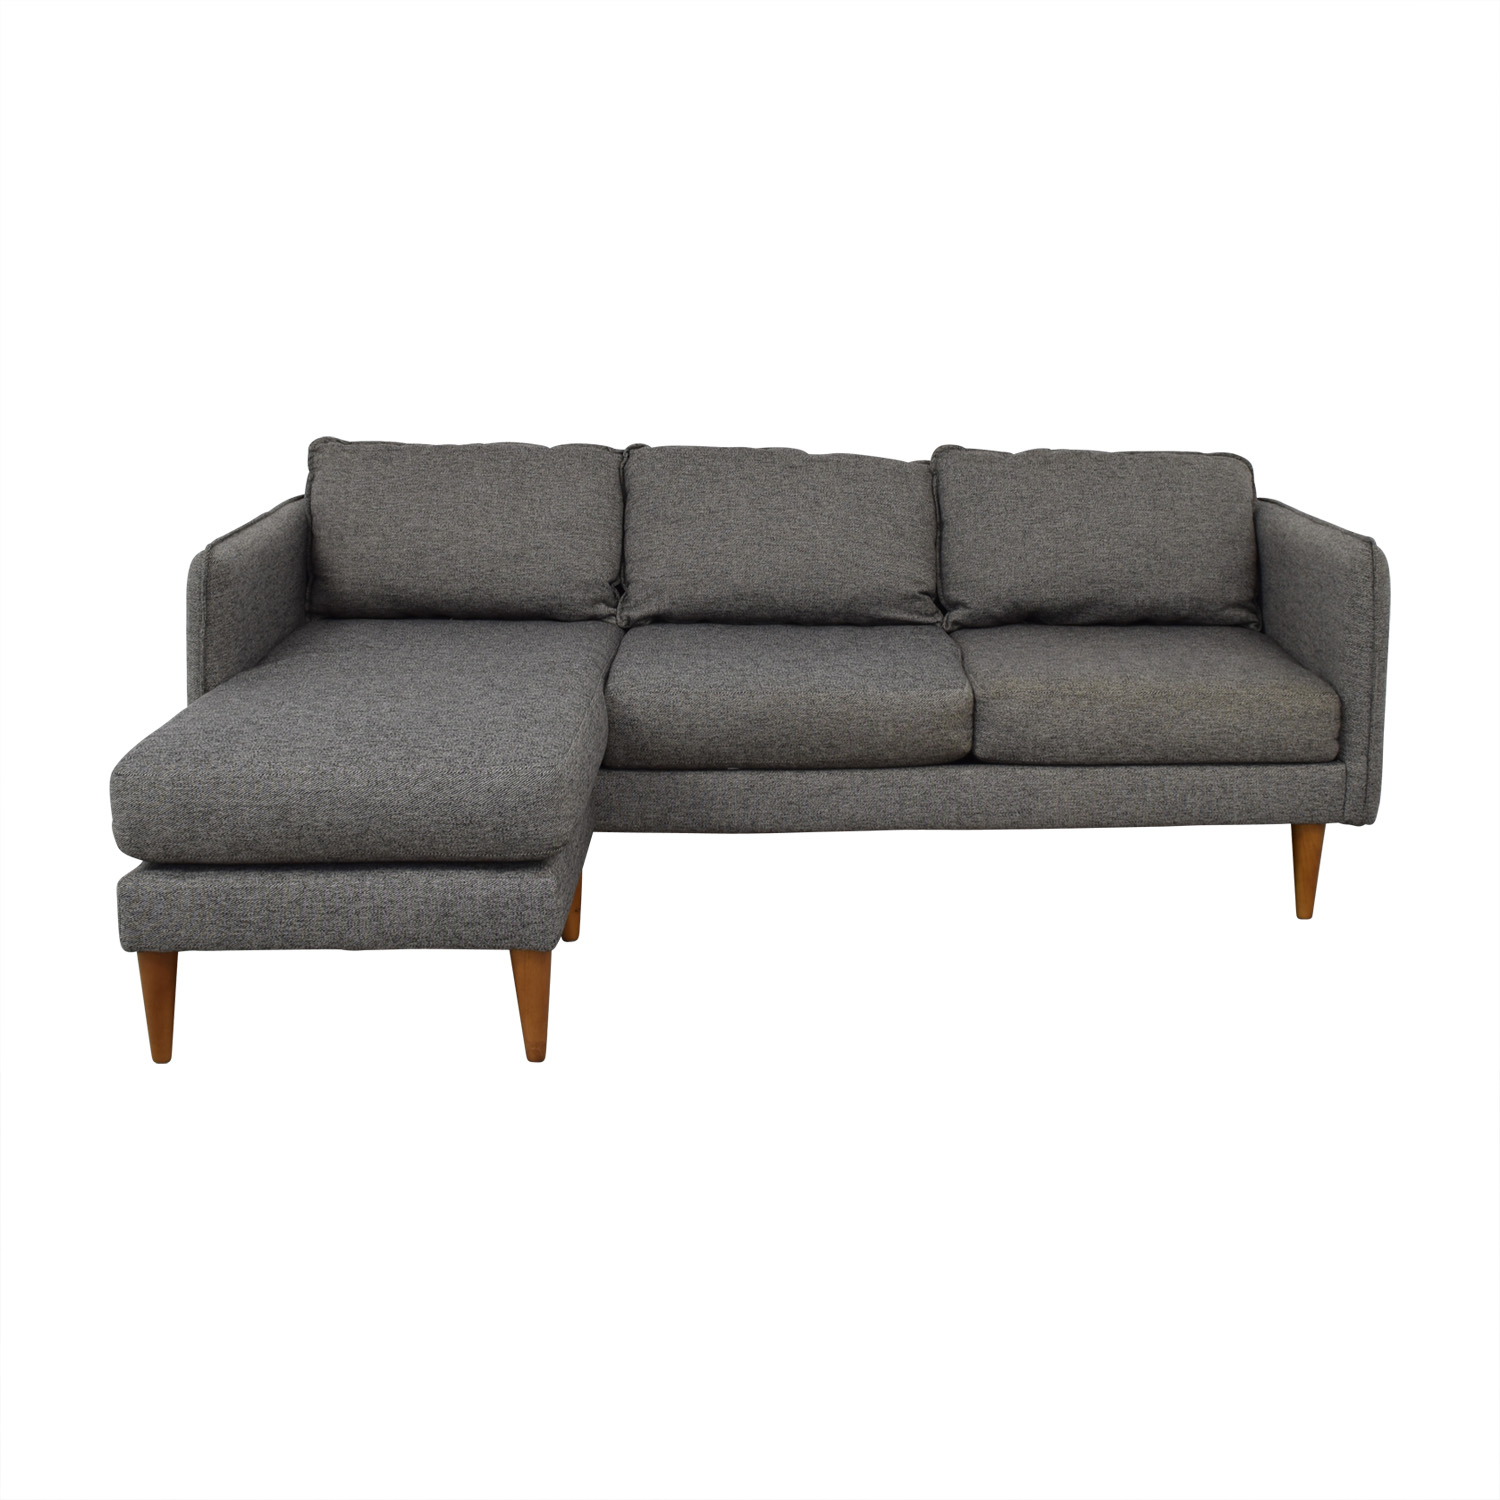 buy West Elm West Elm Quinn Grey Chaise Sectional online